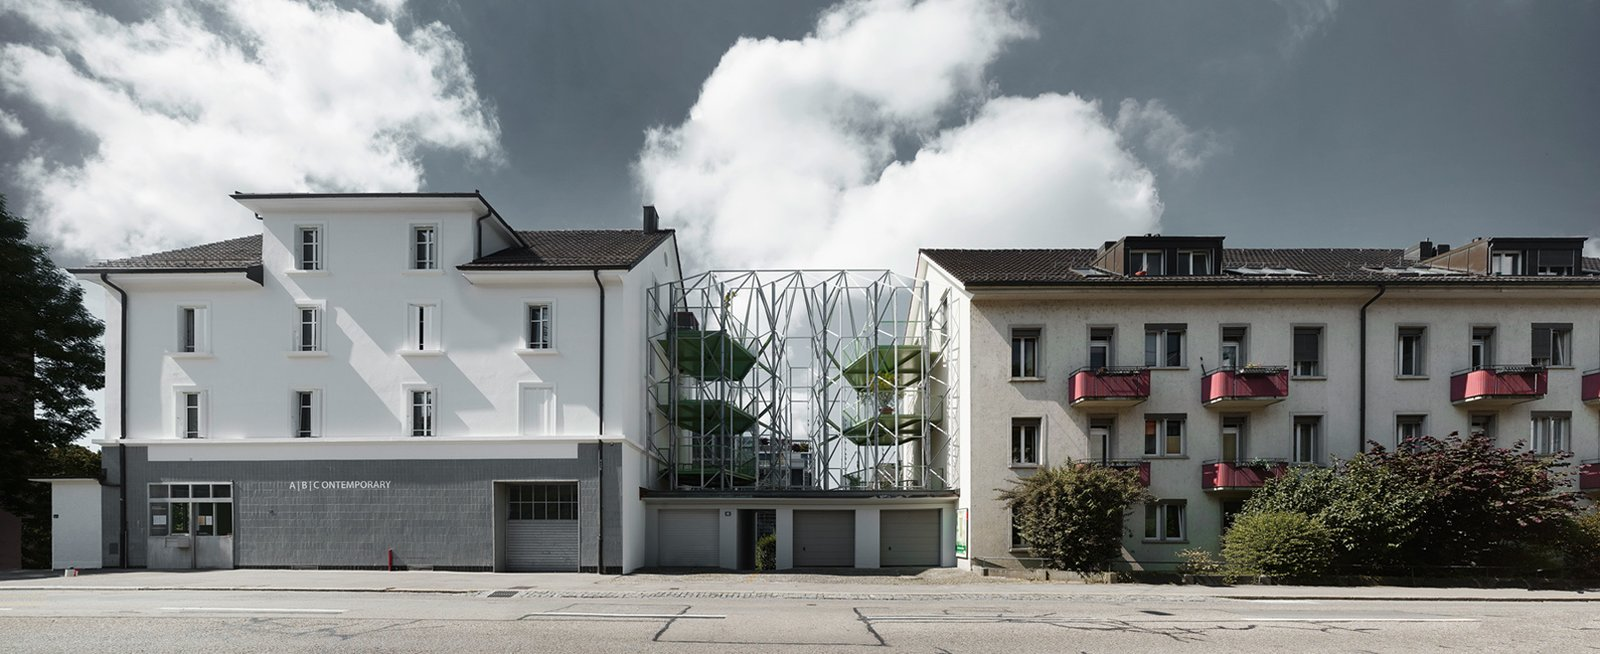 Via designboom, photo by Valentin Jeck  Photo 7 of 11 in This Week's 10 Best Houses